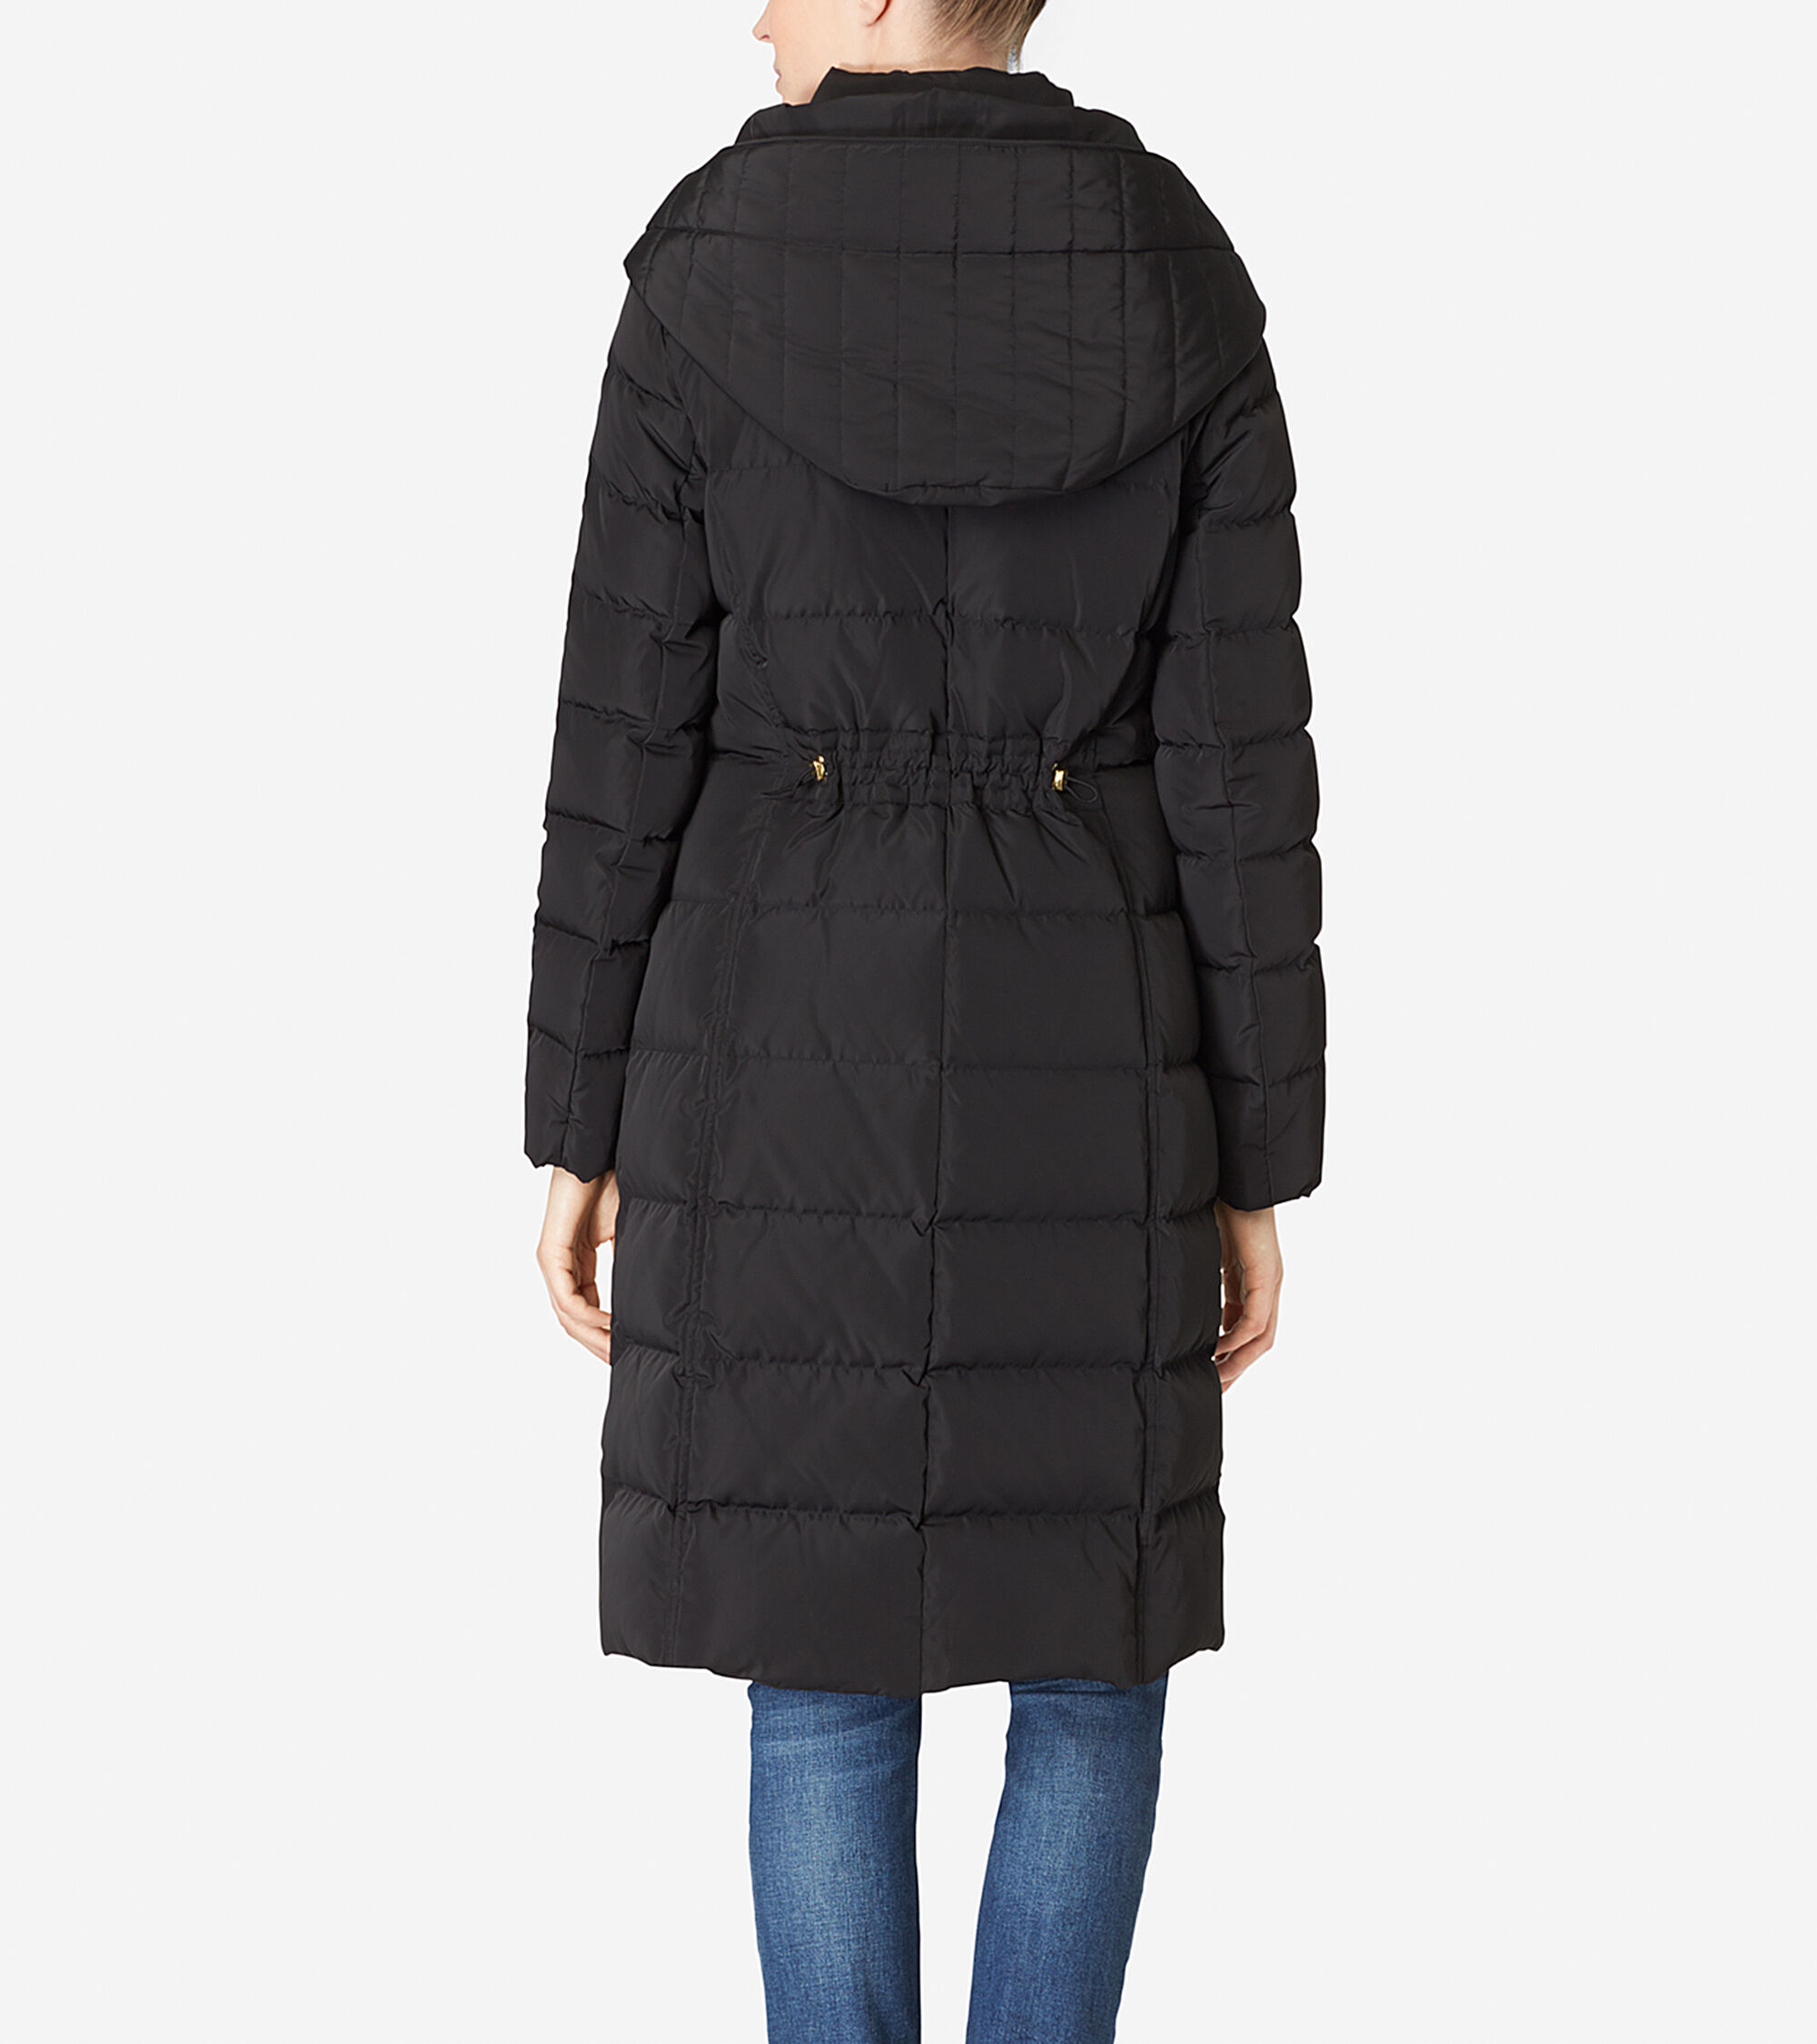 c2e3141bc15ee Women s Hooded Quilted Exposed Down Jacket in Black